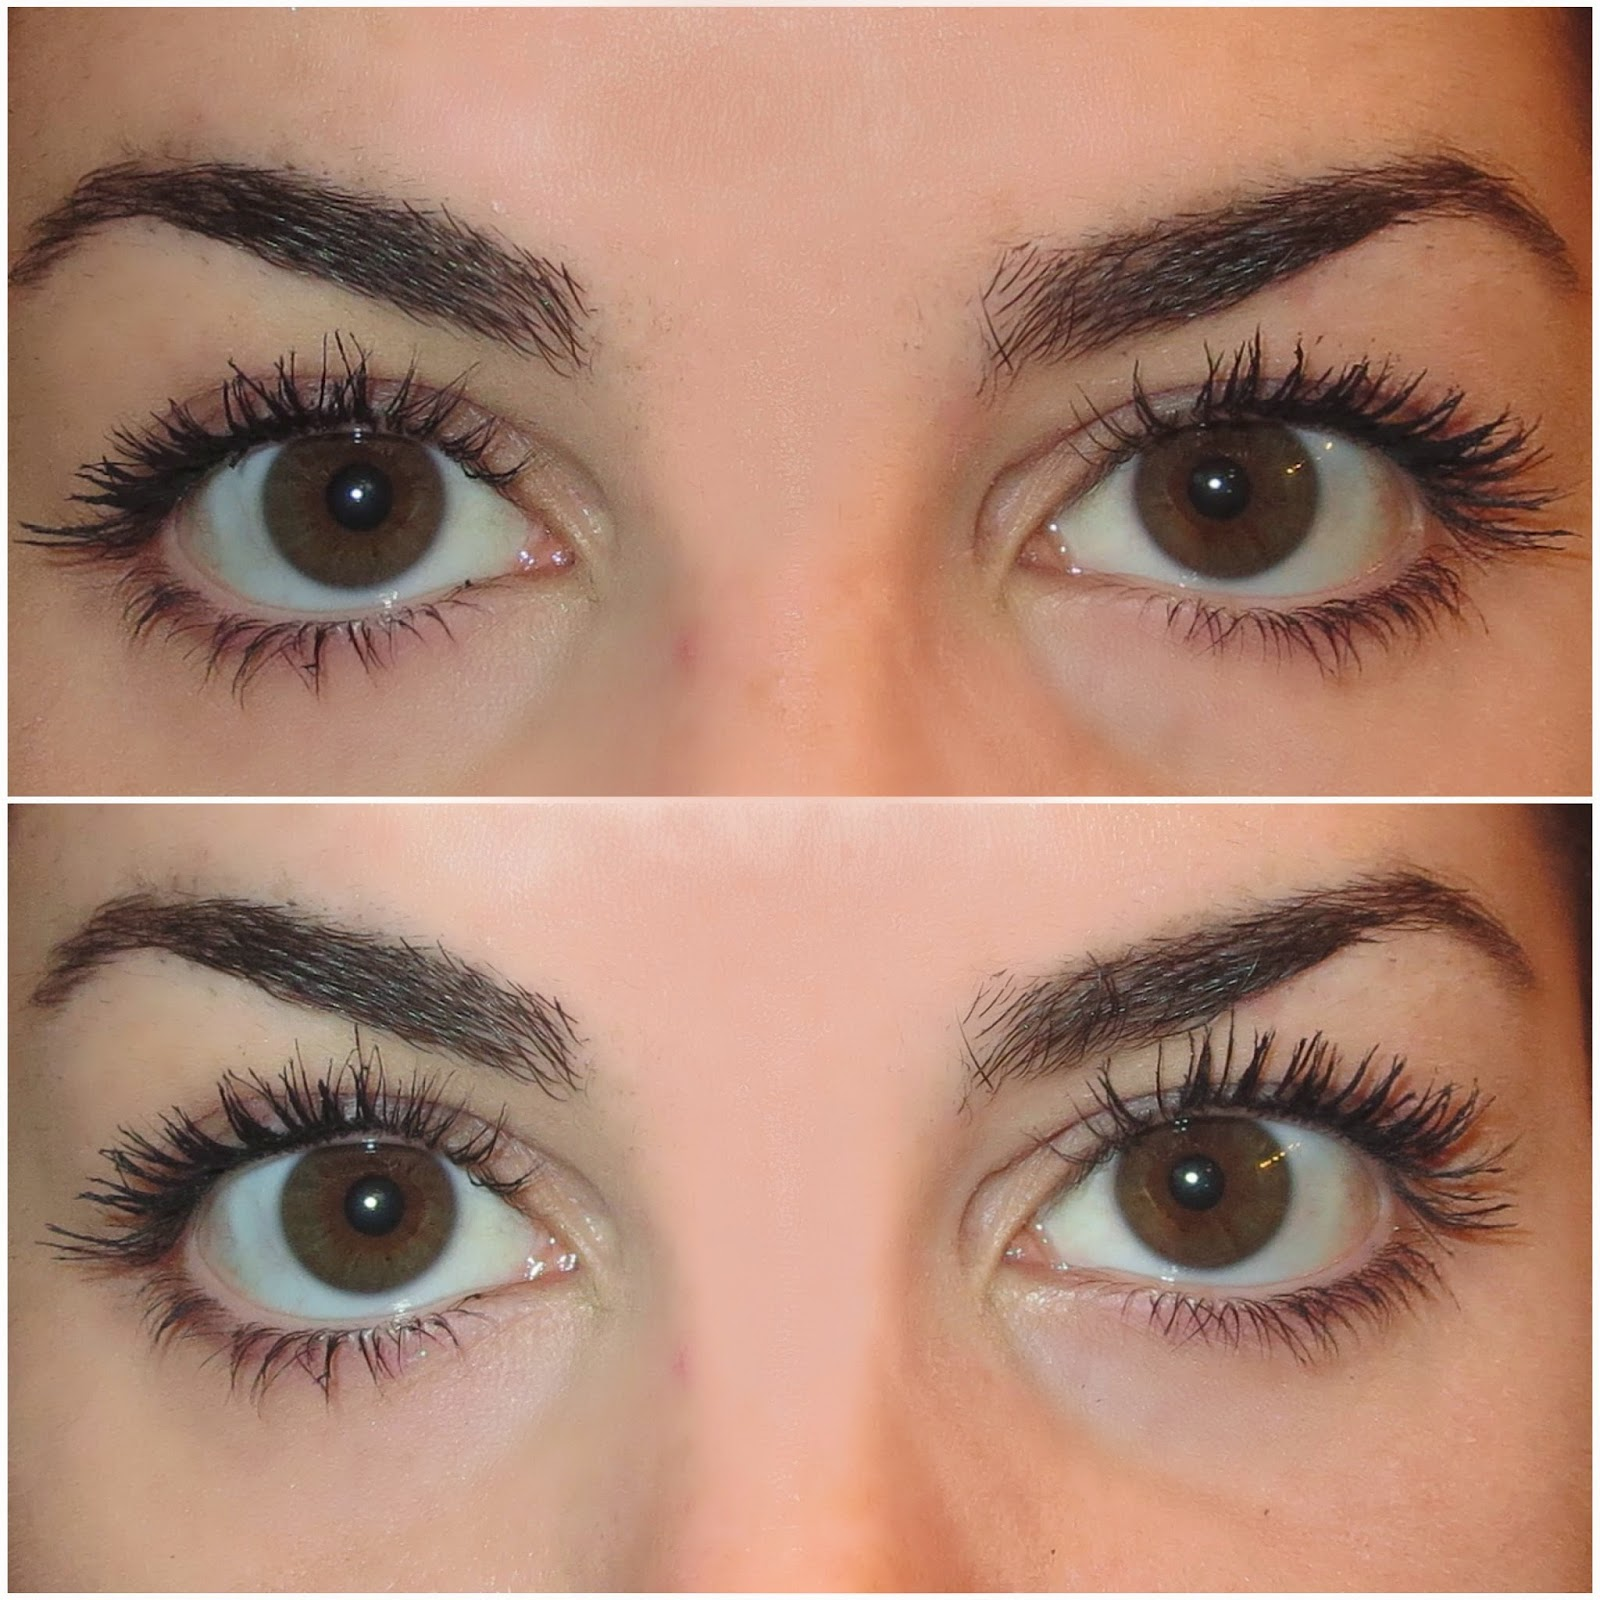 a picture of lashes with 2 coats of Benefit Roller Lash mascara and then recurled and brushed through